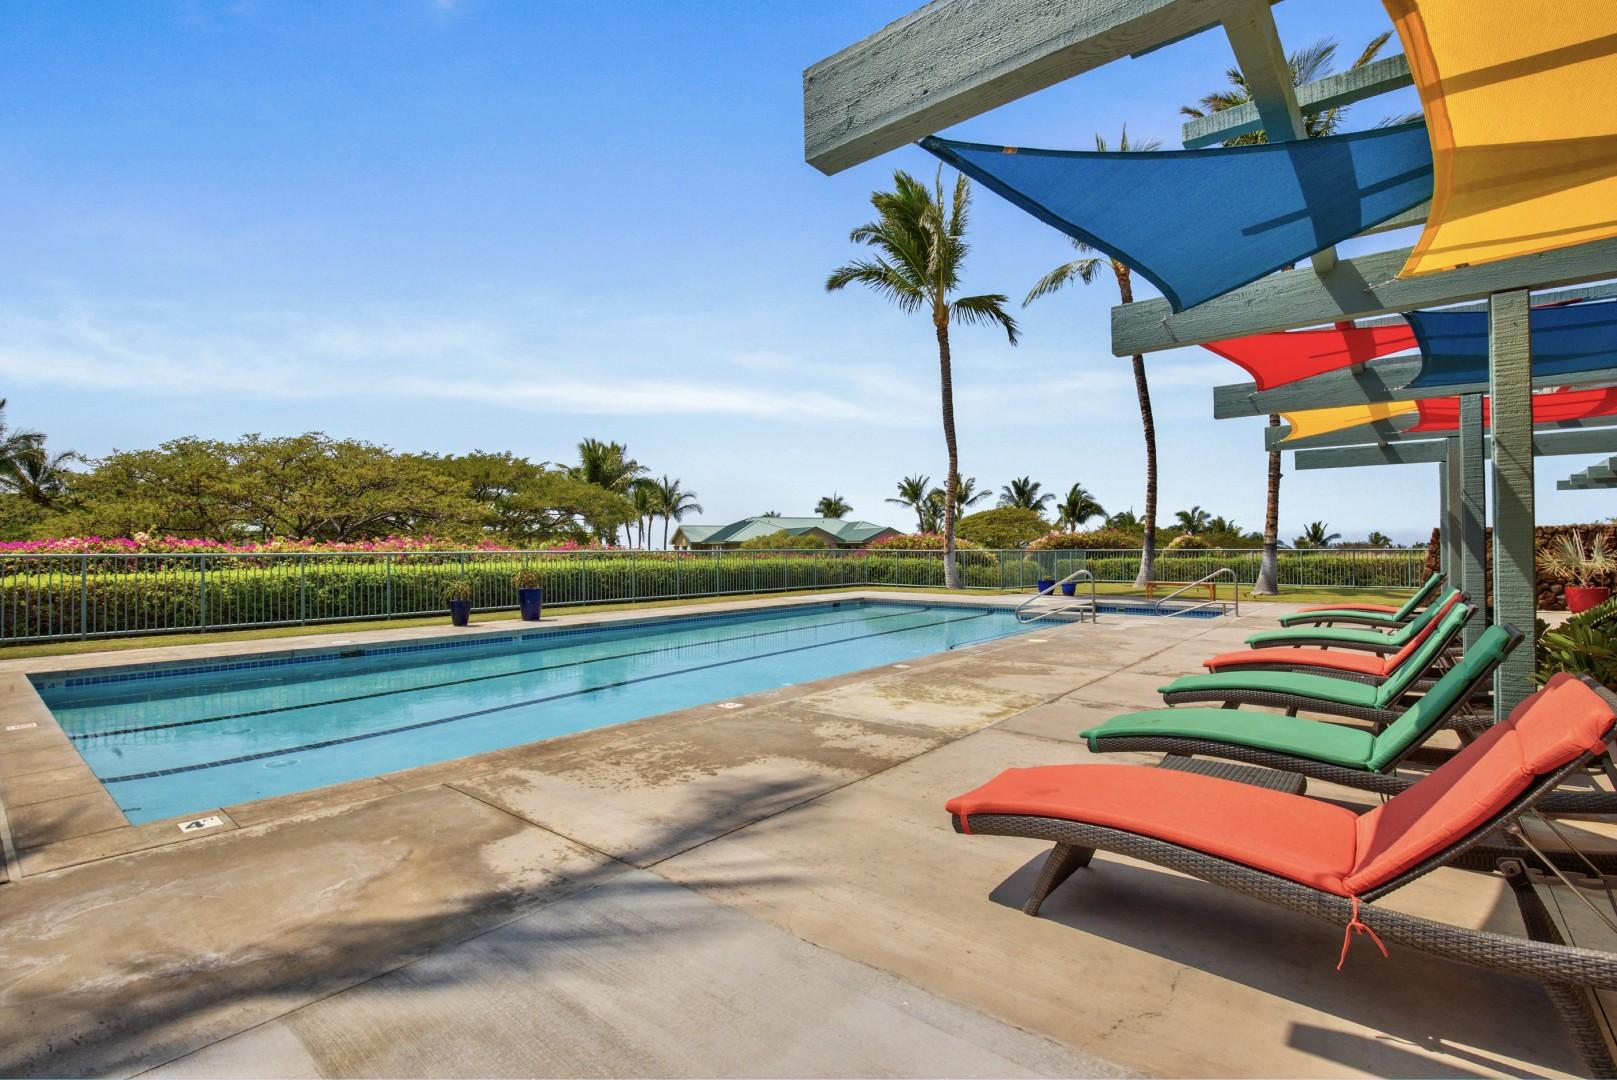 Alternate view of amenities center pool with colorful loungers and shade sails.